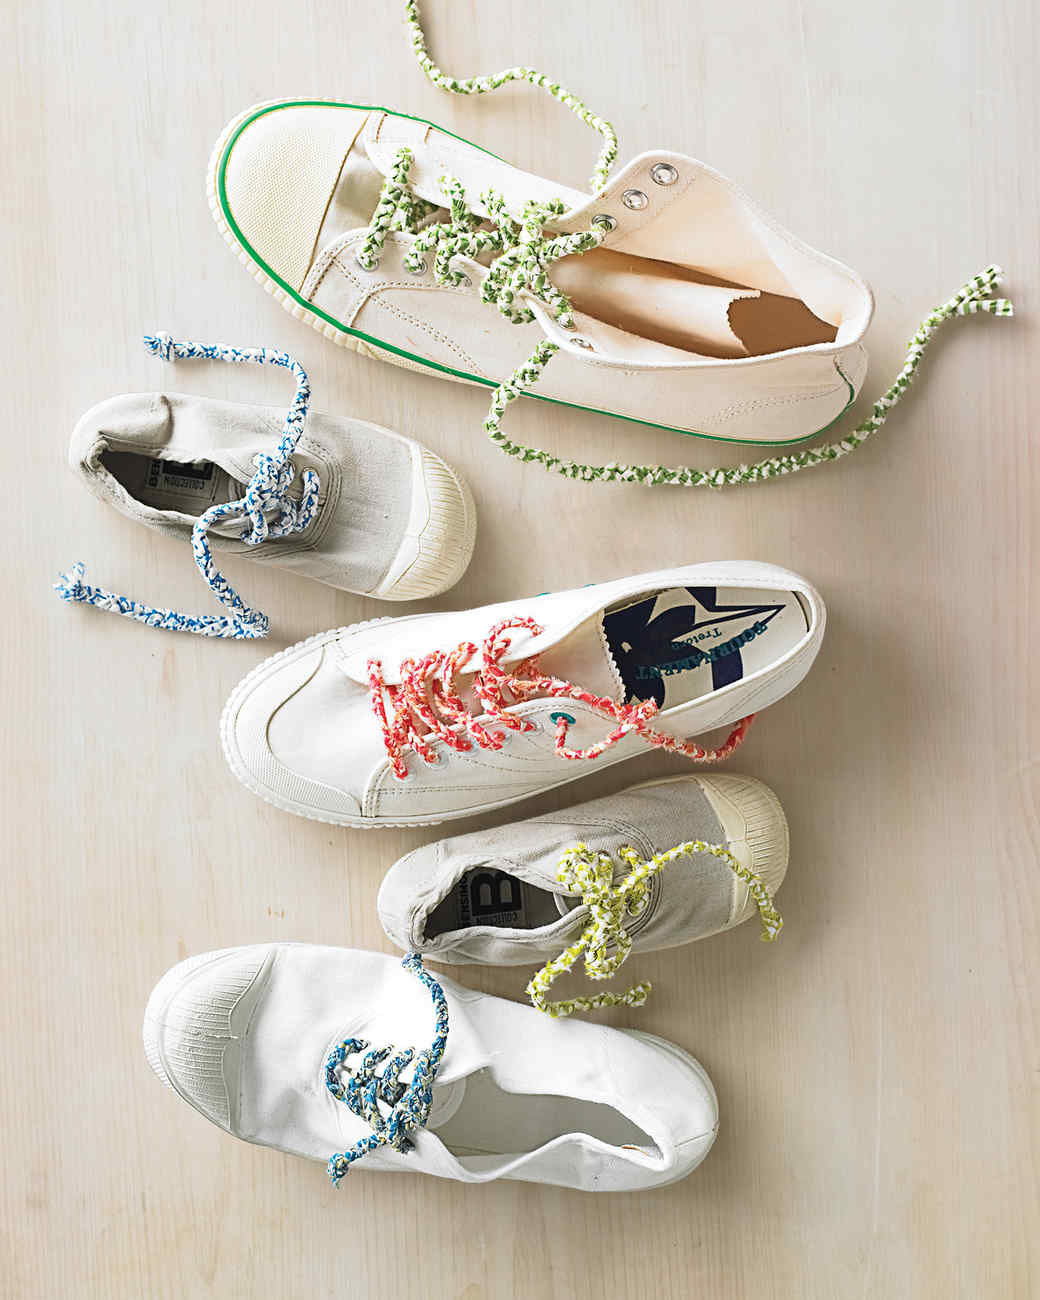 Sneakers with Braided Shoelaces